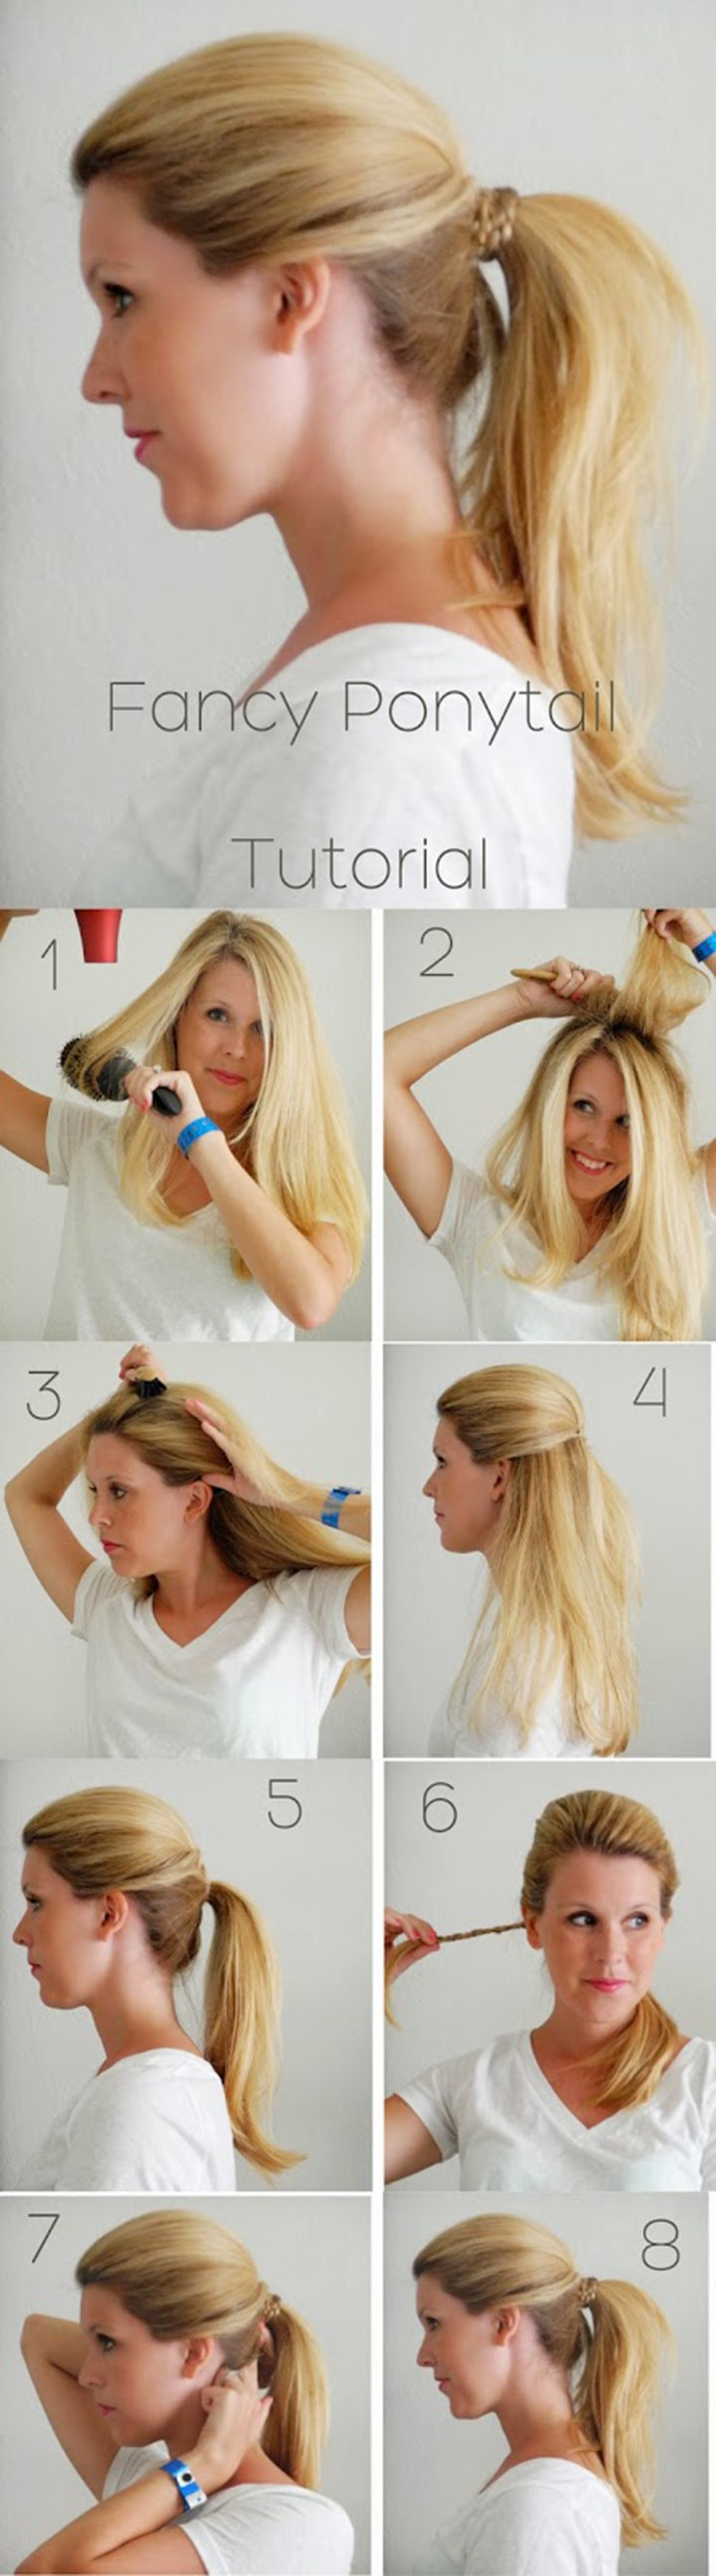 Top 9 Simple & Fashionable Ponytail Hairstyles To Try This Summer